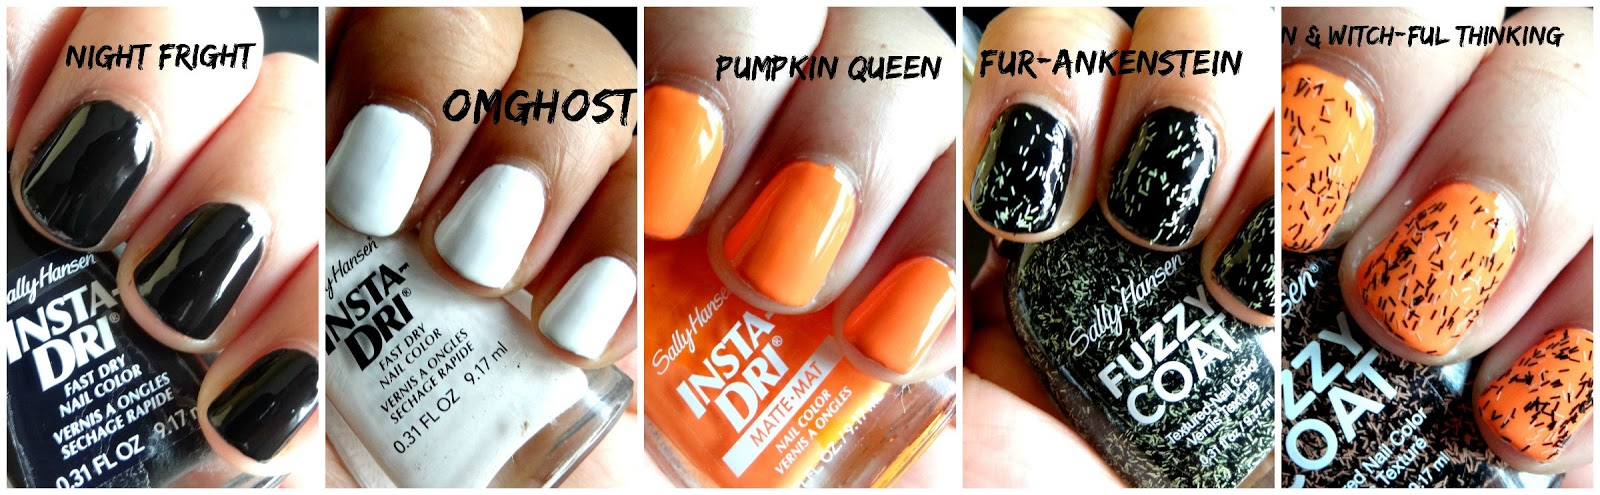 Night Fright- a rich black opaque Black creme OMGhost- a creme opaque White Pumpkin Queen- a bright matte Orange Fur-ankenstein- Black and Green mixed texture Witch-ful Thinking-